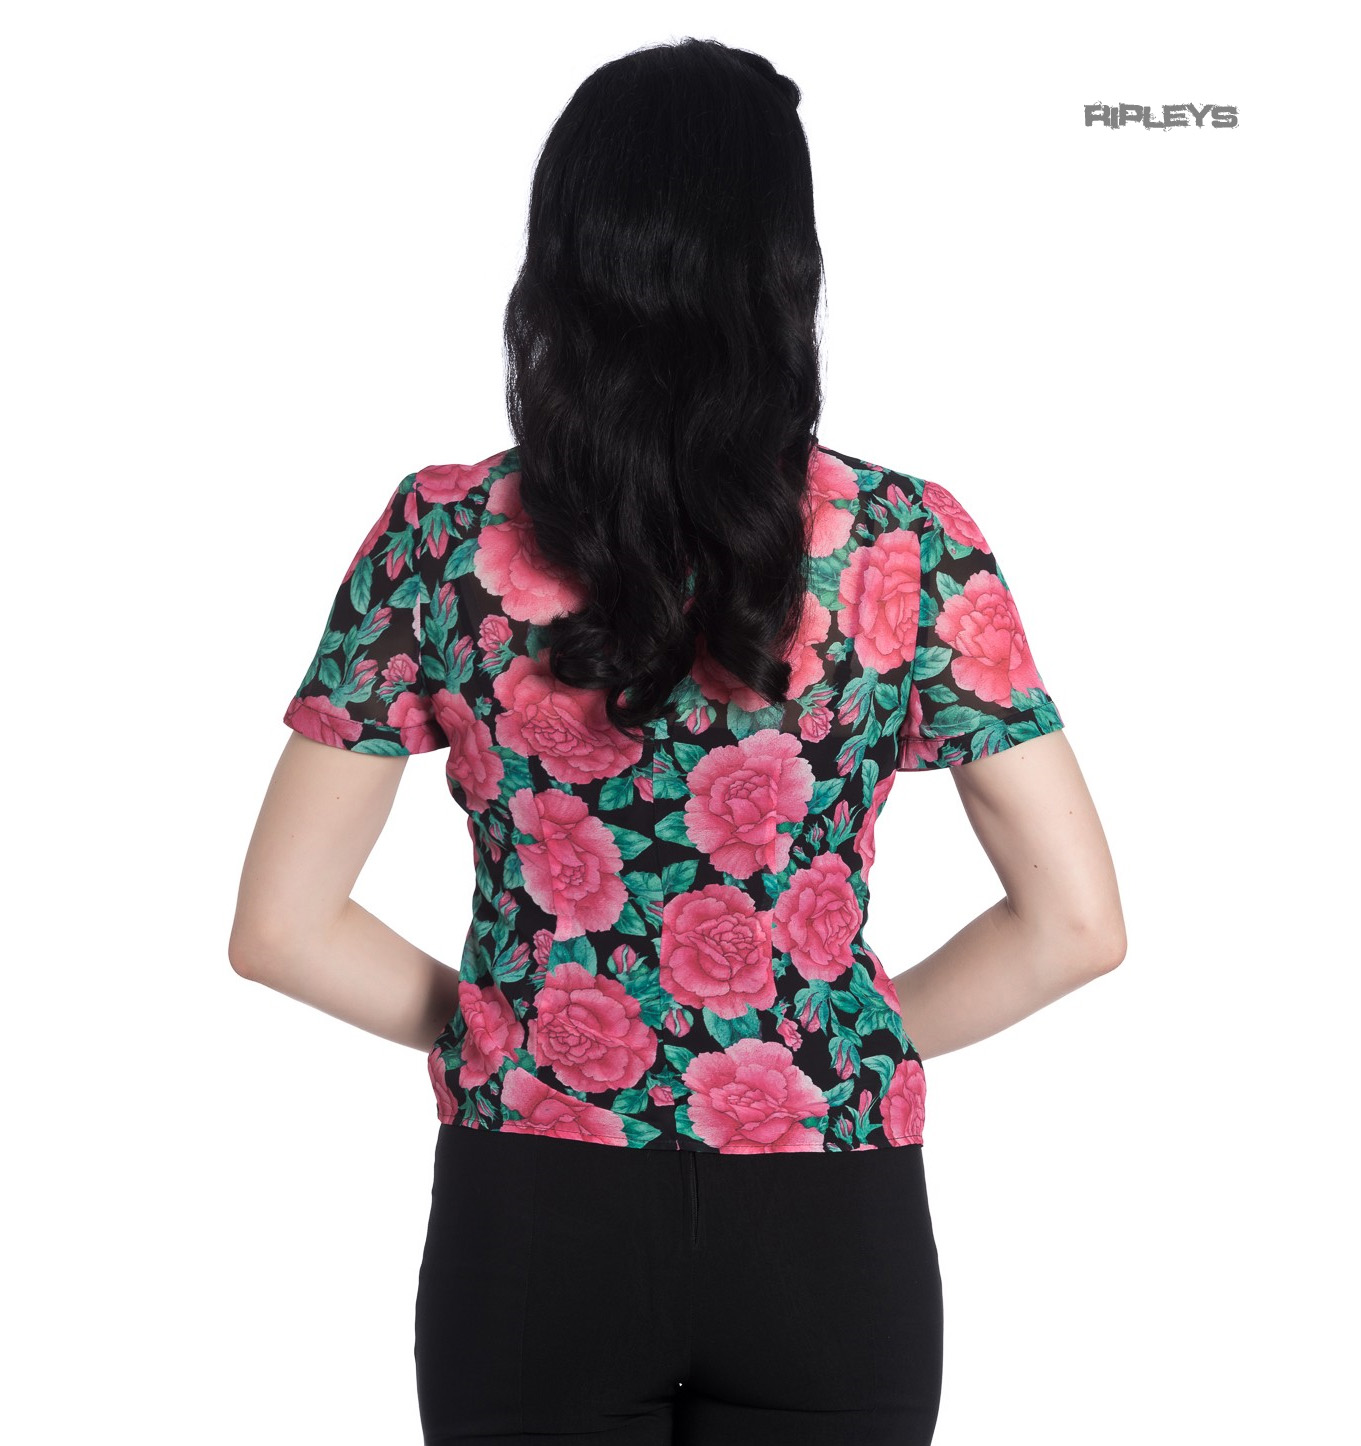 Hell-Bunny-Shirt-Top-Flowers-Roses-EDEN-ROSE-Black-Pink-Blouse-All-Sizes thumbnail 28